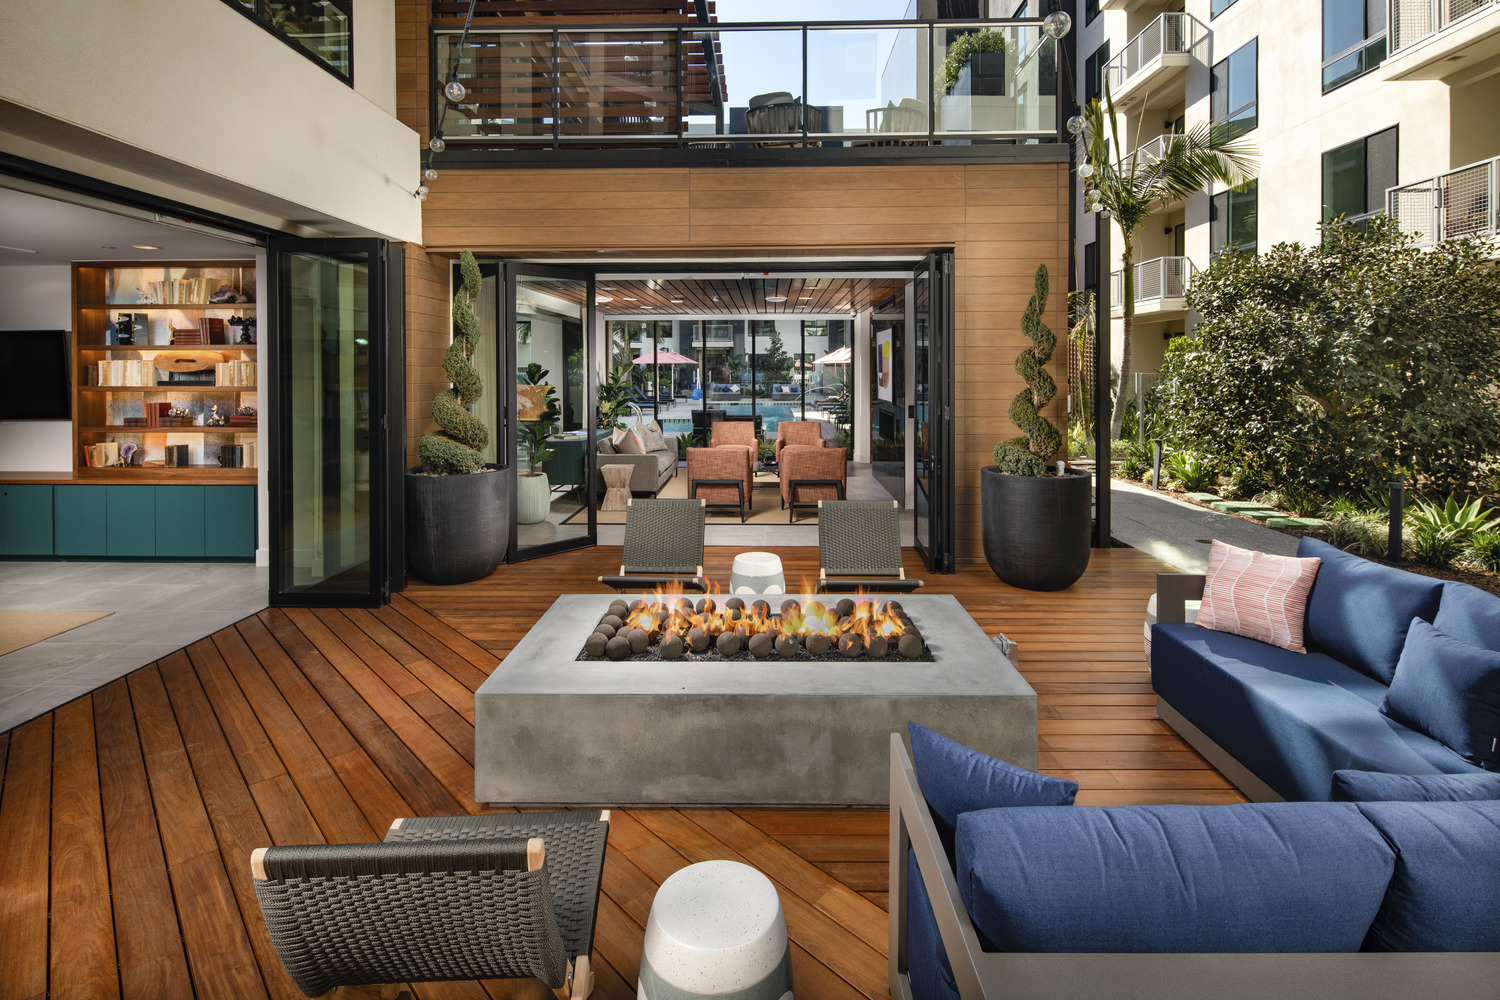 CBG builds Cameo, a 262-Unit Luxury Community with Rooftop and Amenities in Orange, CA - Image #2